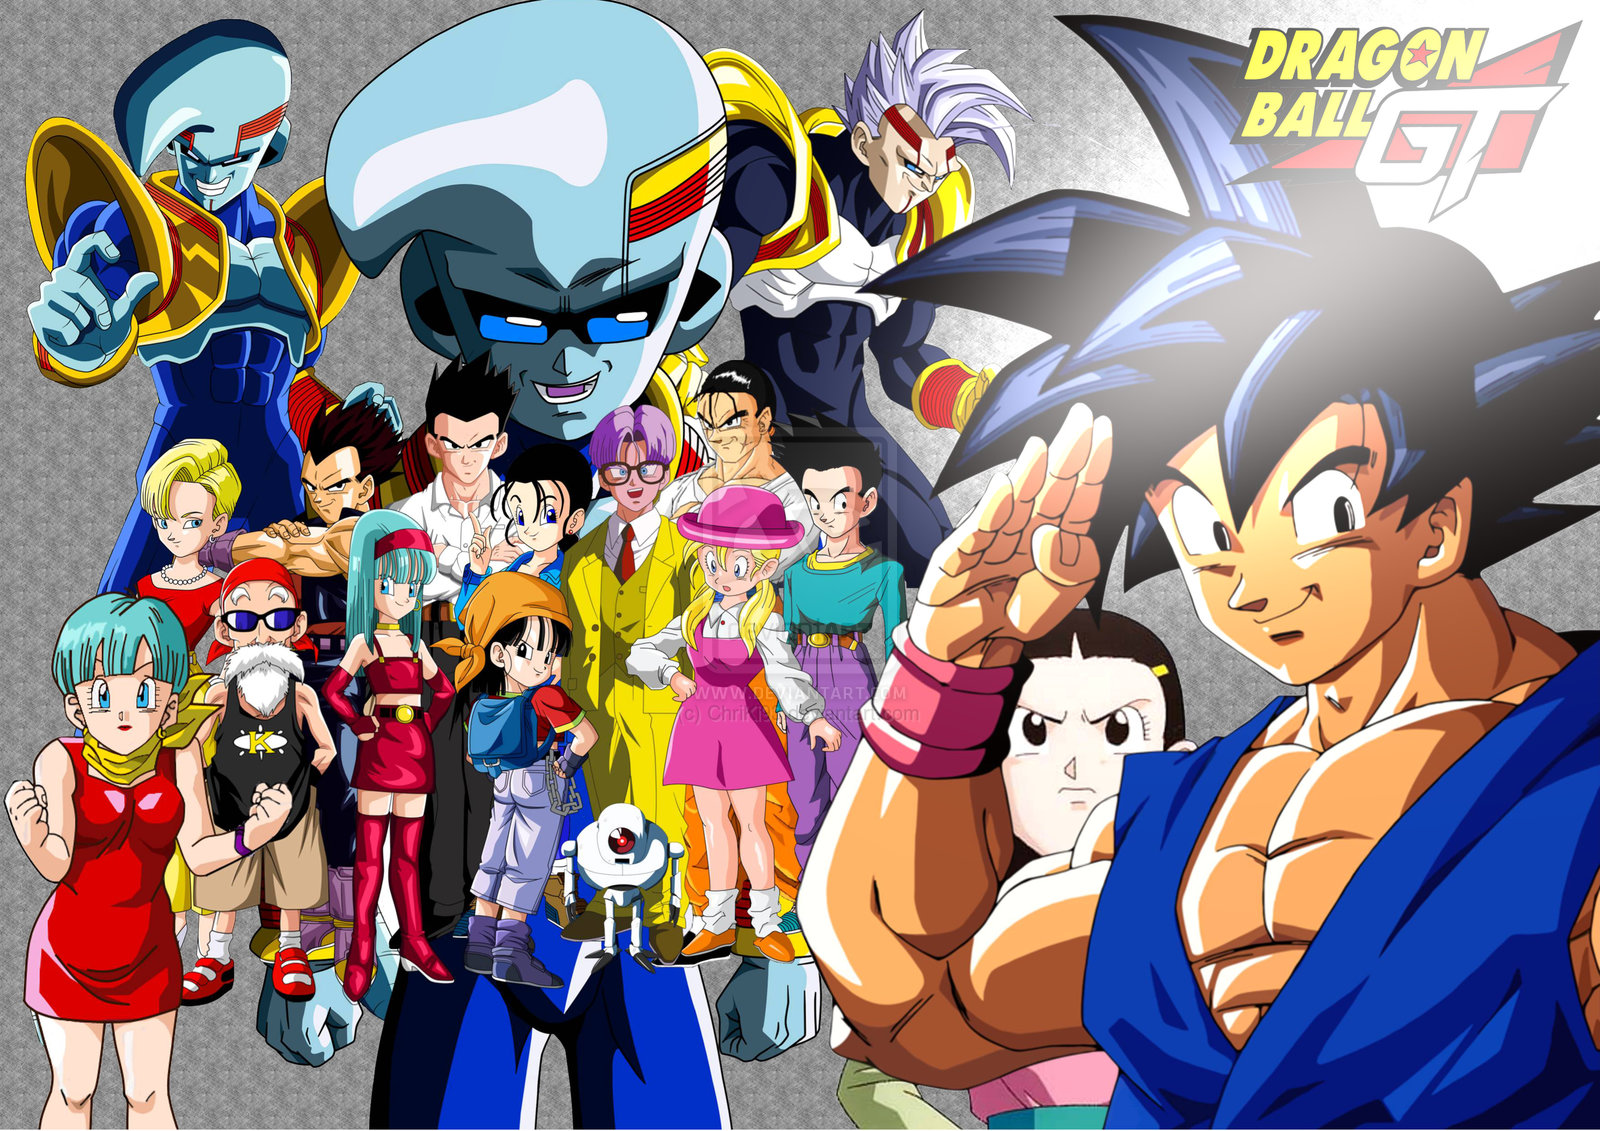 Dragon Ball Anime Español Latinoysub Saga De Baby Dragon Ball Gt En Latino